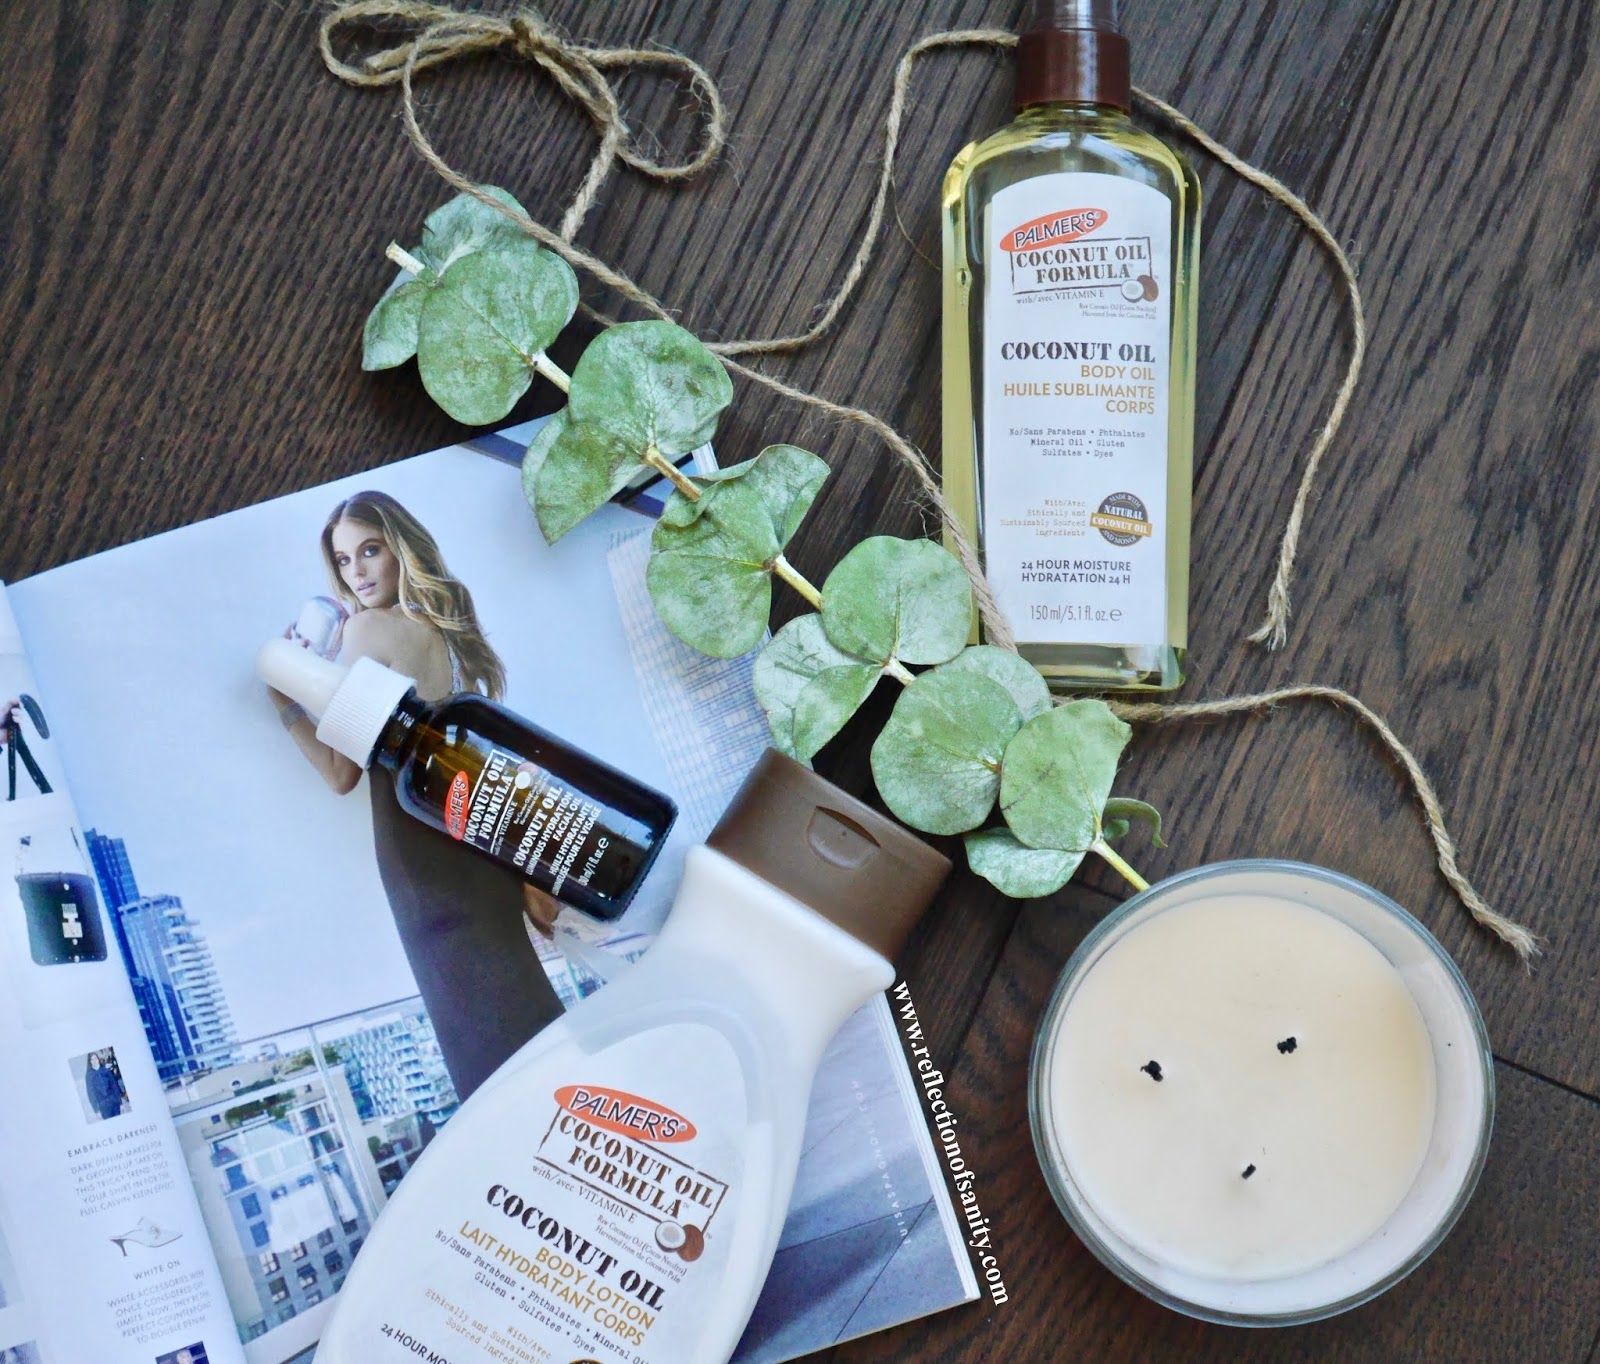 drugstore beauty, drugstore brand, body care, skincare, facial care, facial oil, body oil, body lotion, natural, ethically and sustainably sourced, Canadian beauty